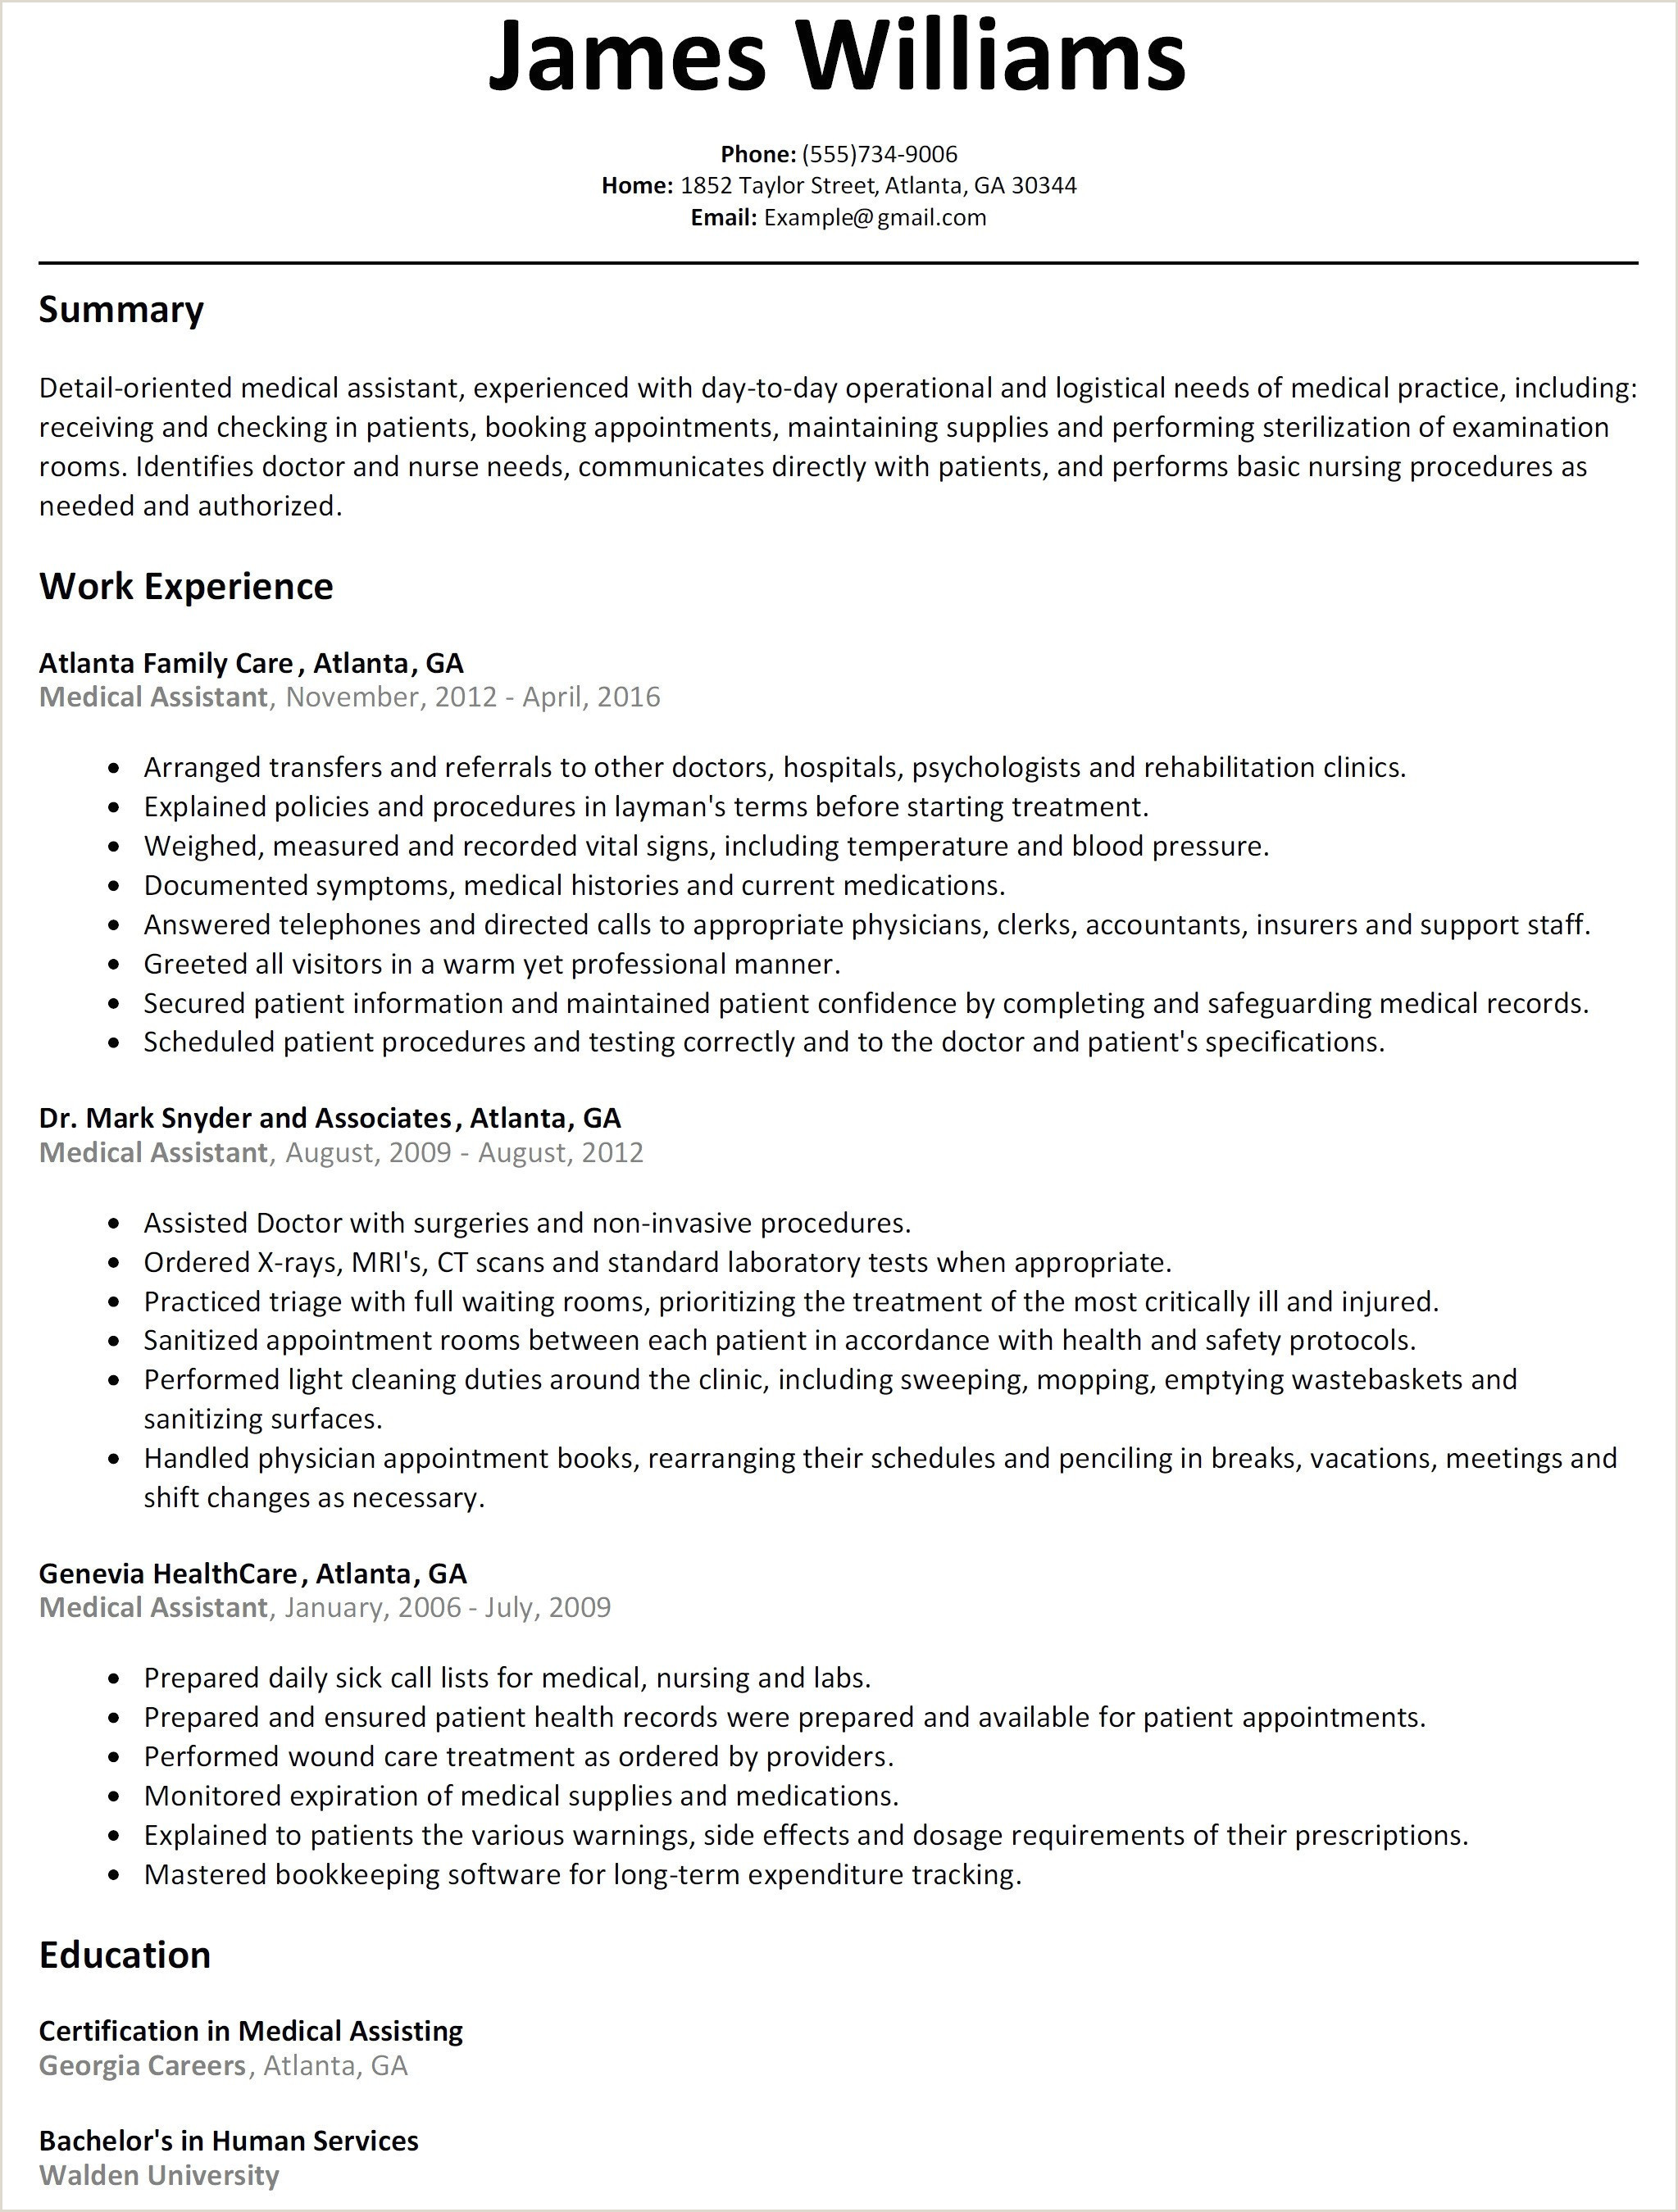 Cv format for Job Free Download Microsoft Word Cv Template Free Best Free Resume Template